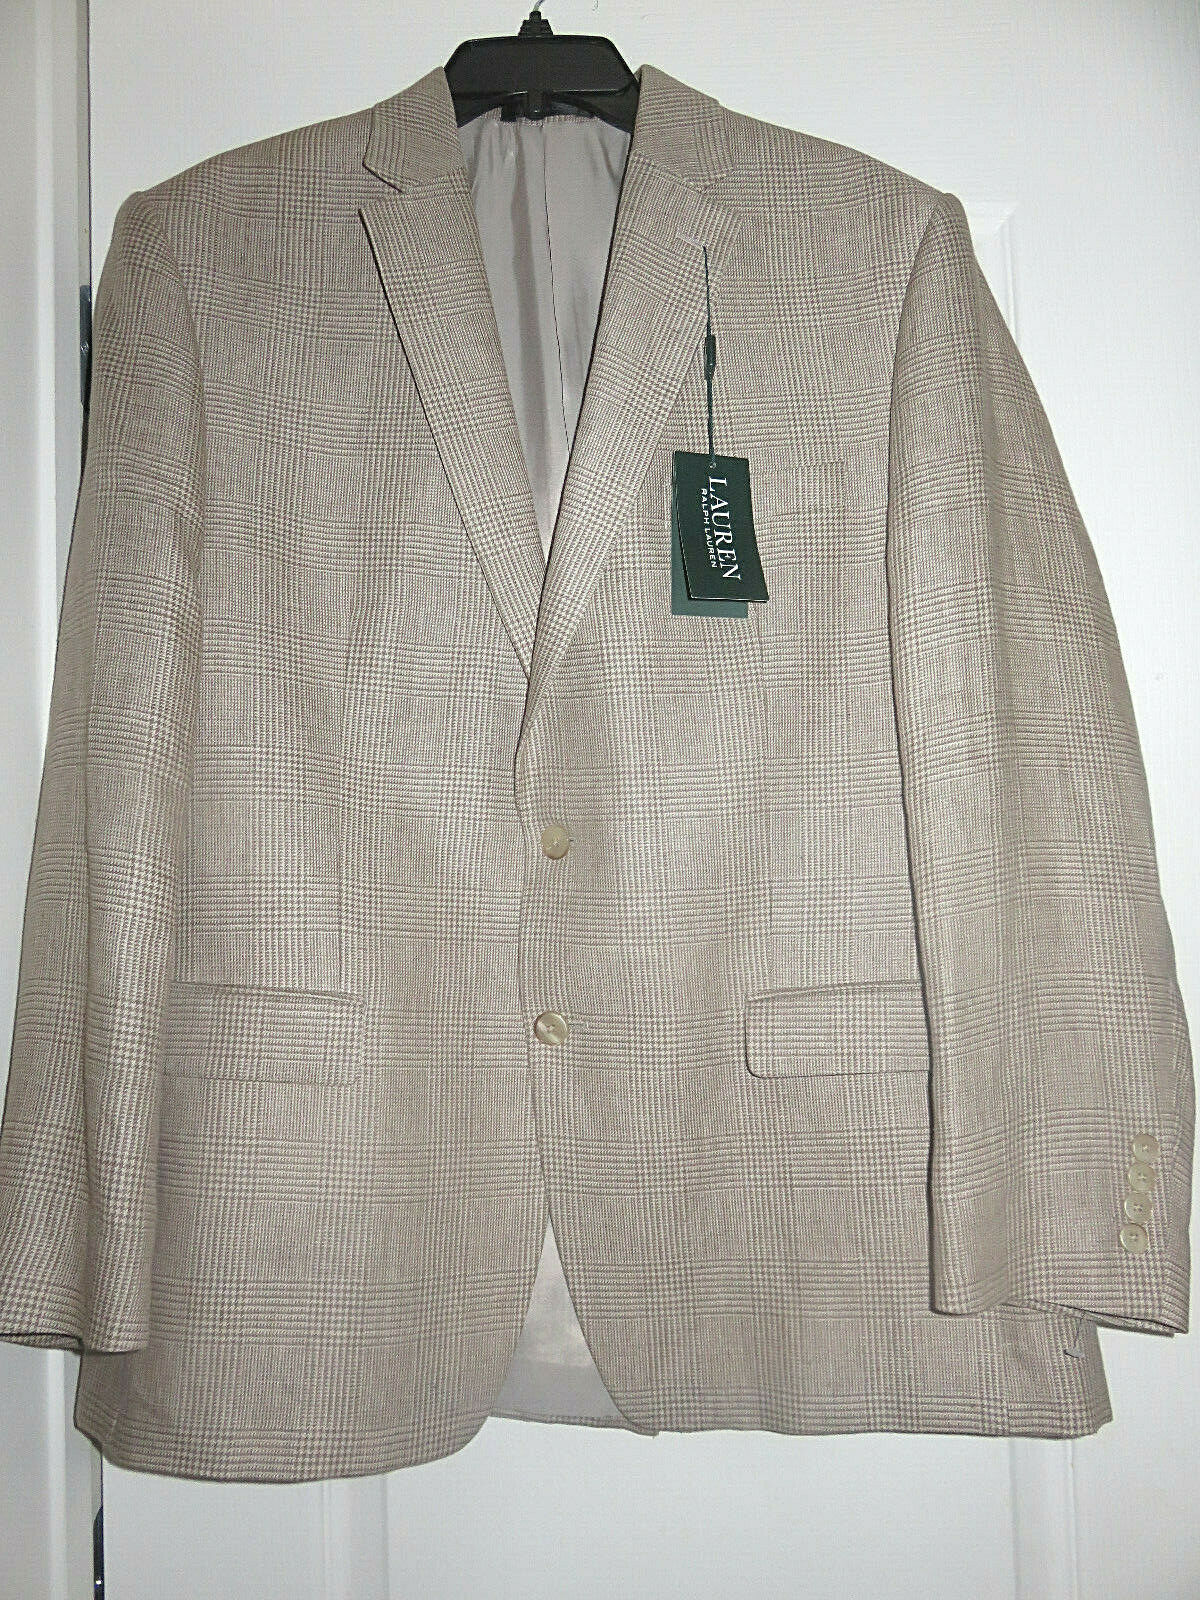 Primary image for RALPH LAUREN LELA MEN'S BEIGE YELLOW 100% LINEN SPORT JACKET 44 REG NEW